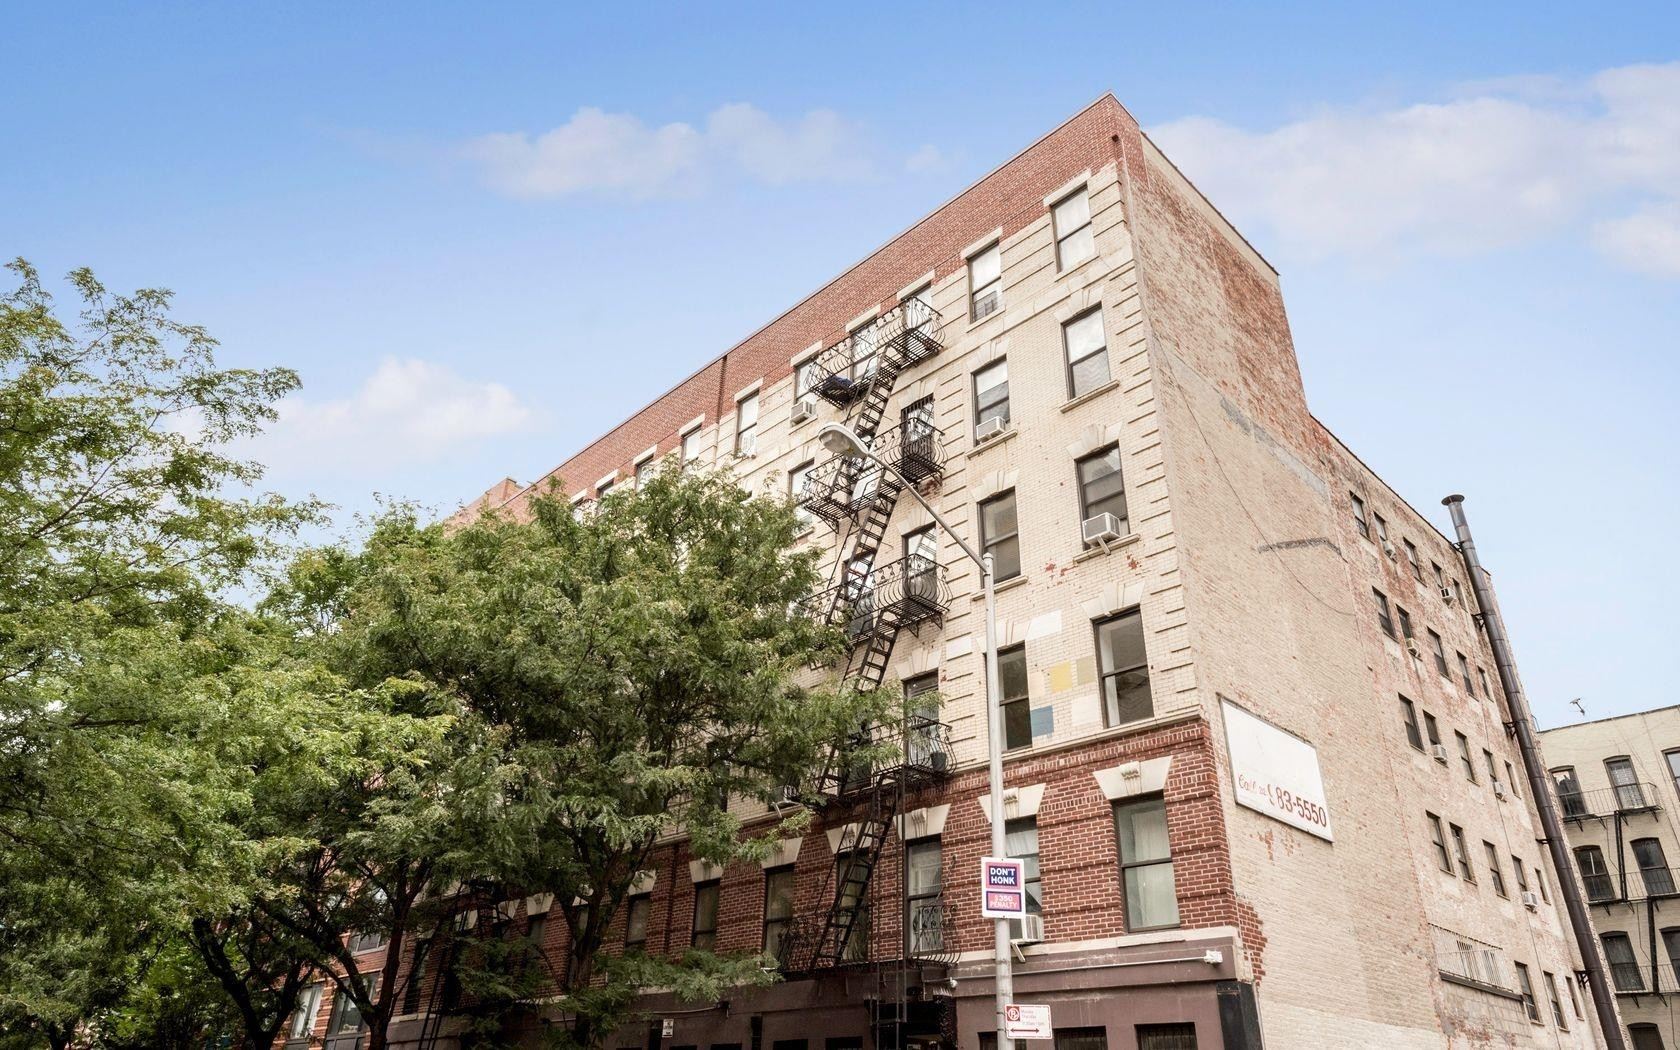 1. edificio en 319 East 105th St, East Harlem, New York, NY